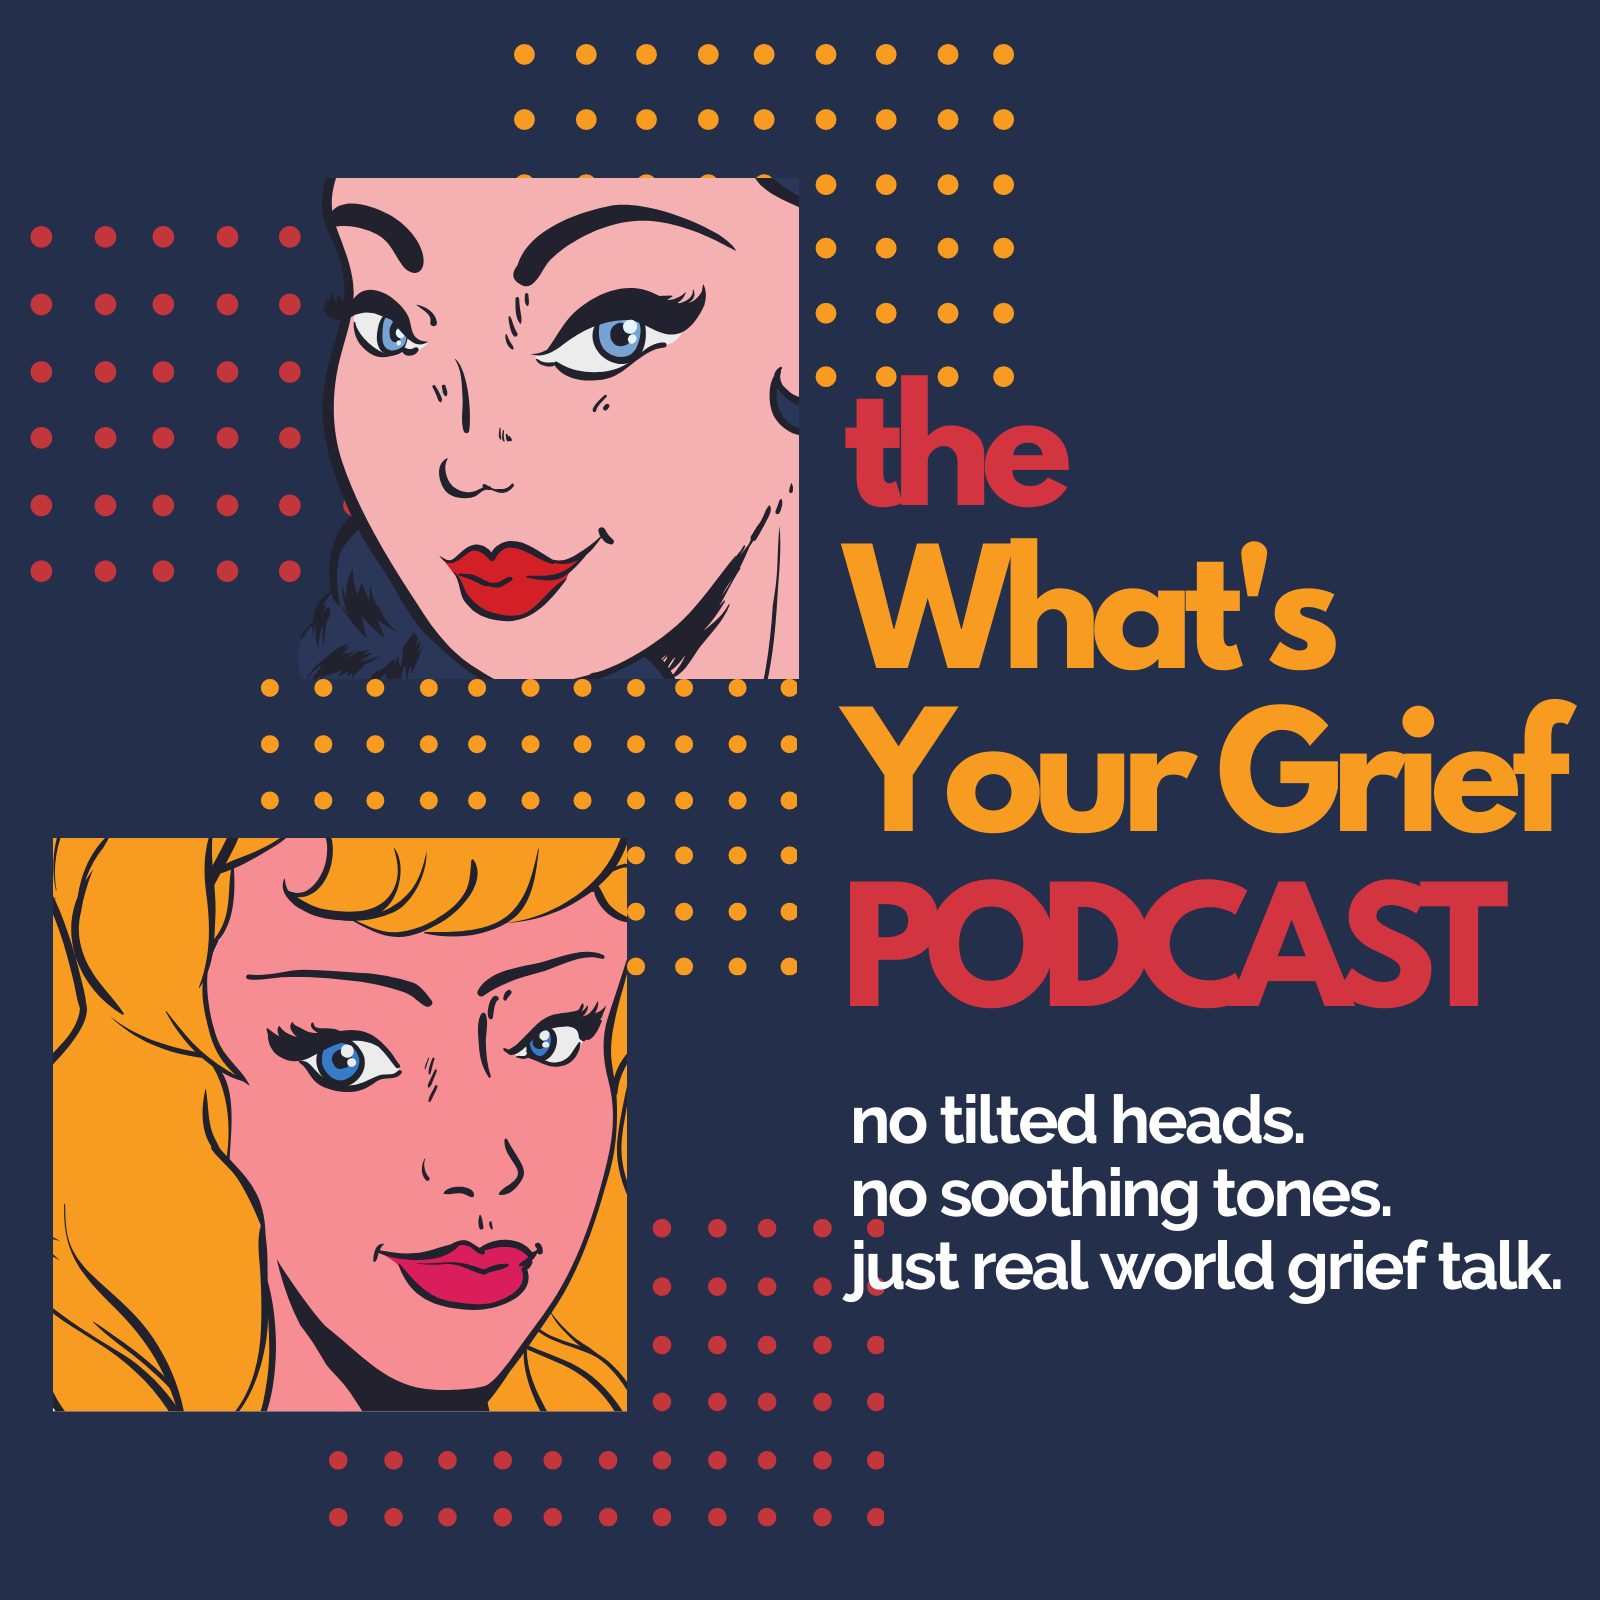 What's Your Grief Podcast: Grief Support for Those Who Like to Listen show art